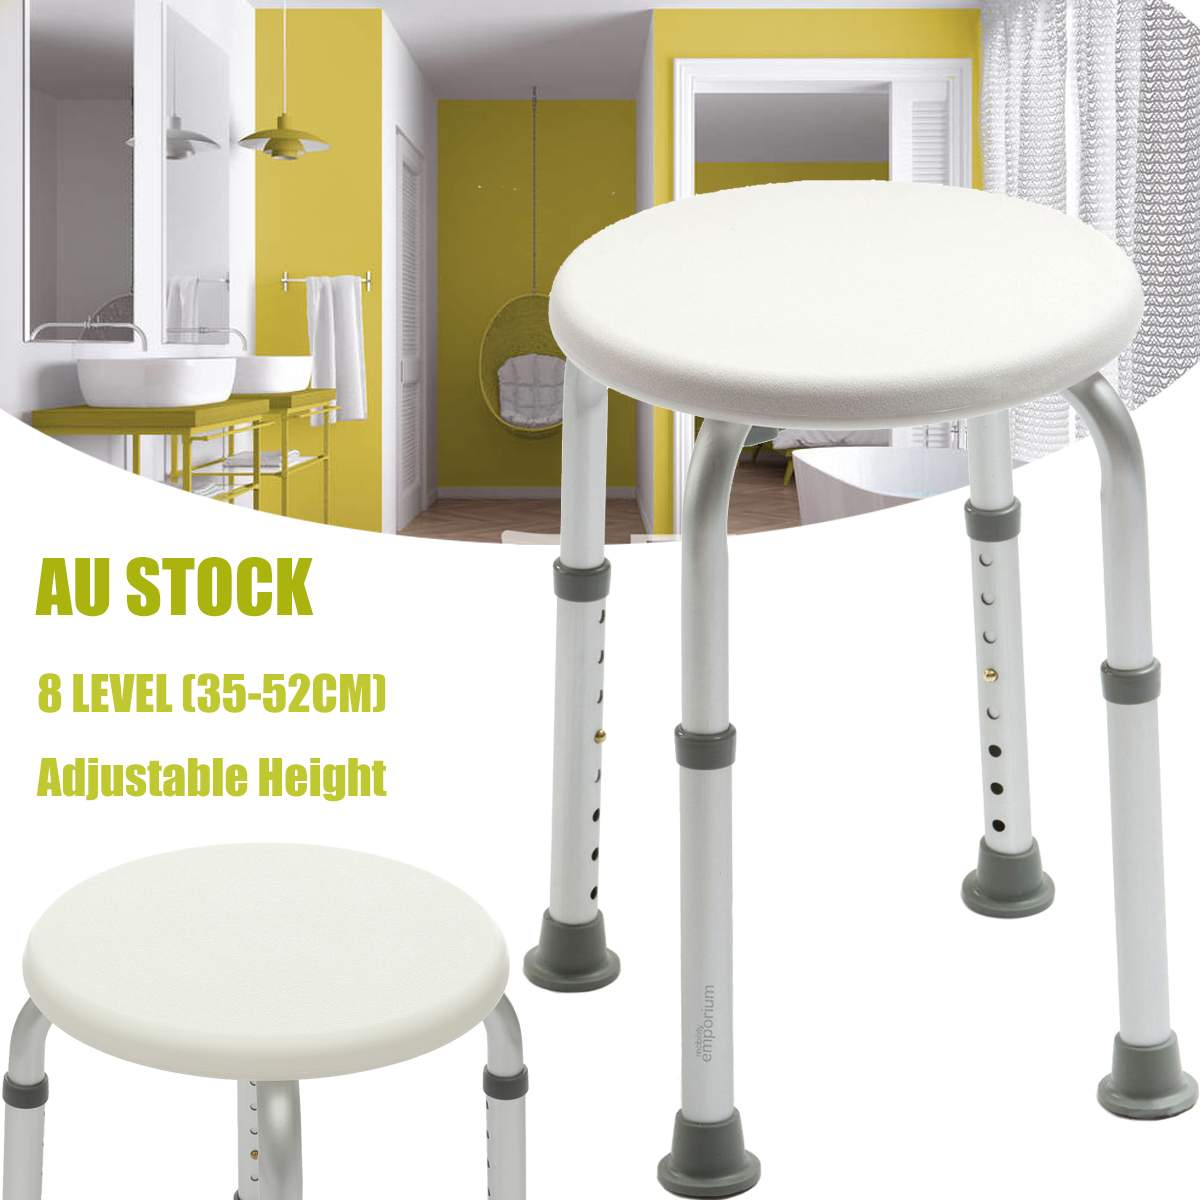 Us 30 3 42 Off Adjustable Shower Chair Bath Seat Adjustable Medical Safety Aluminum Stool Seating Toilet Shower Chairs Kids Bed Shower Chair In